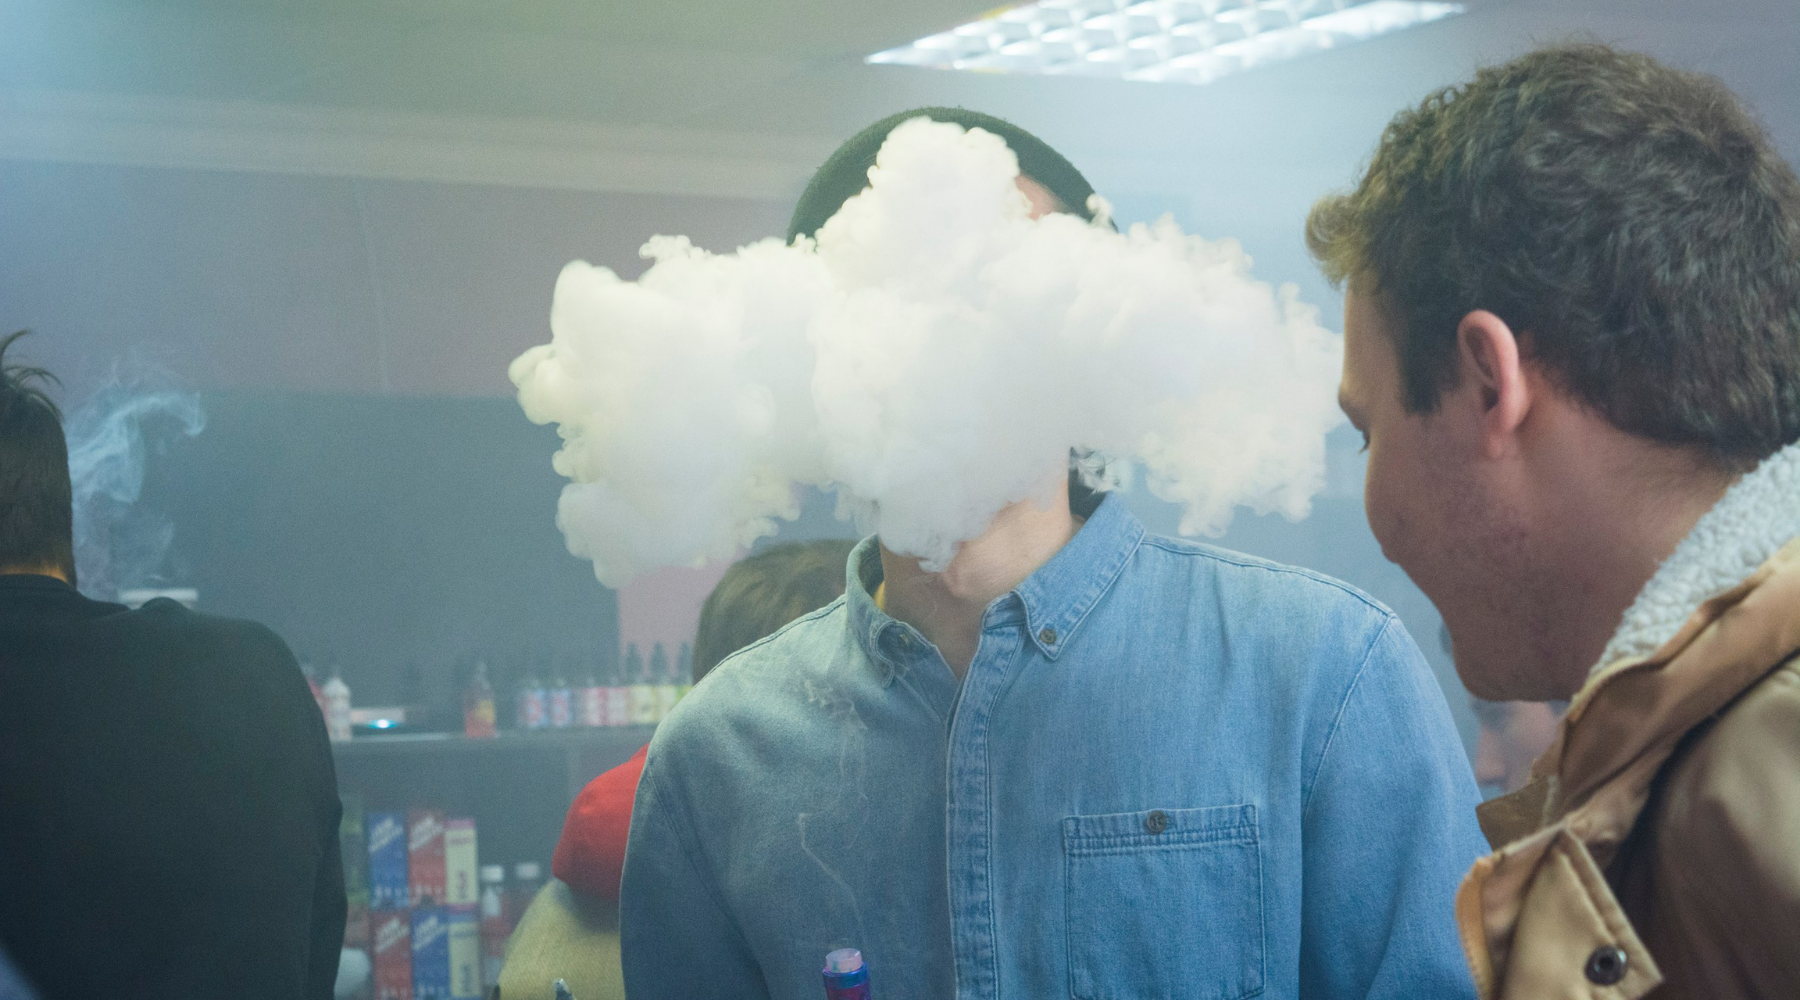 Vape Shop in Maidstone, UK